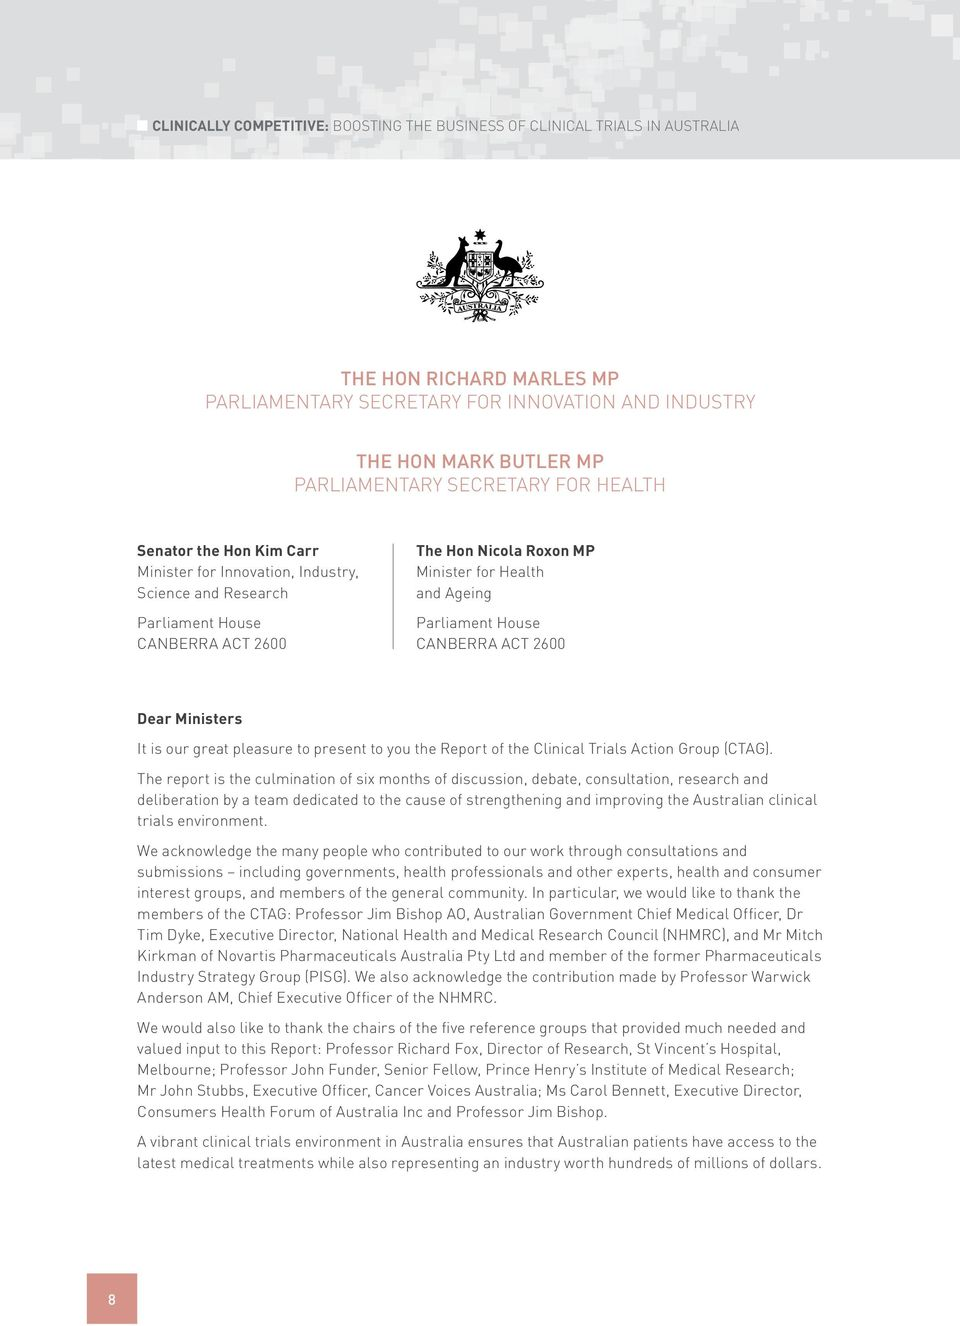 Parliament House CANBERRA ACT 2600 Dear Ministers It is our great pleasure to present to you the Report of the Clinical Trials Action Group (CTAG).